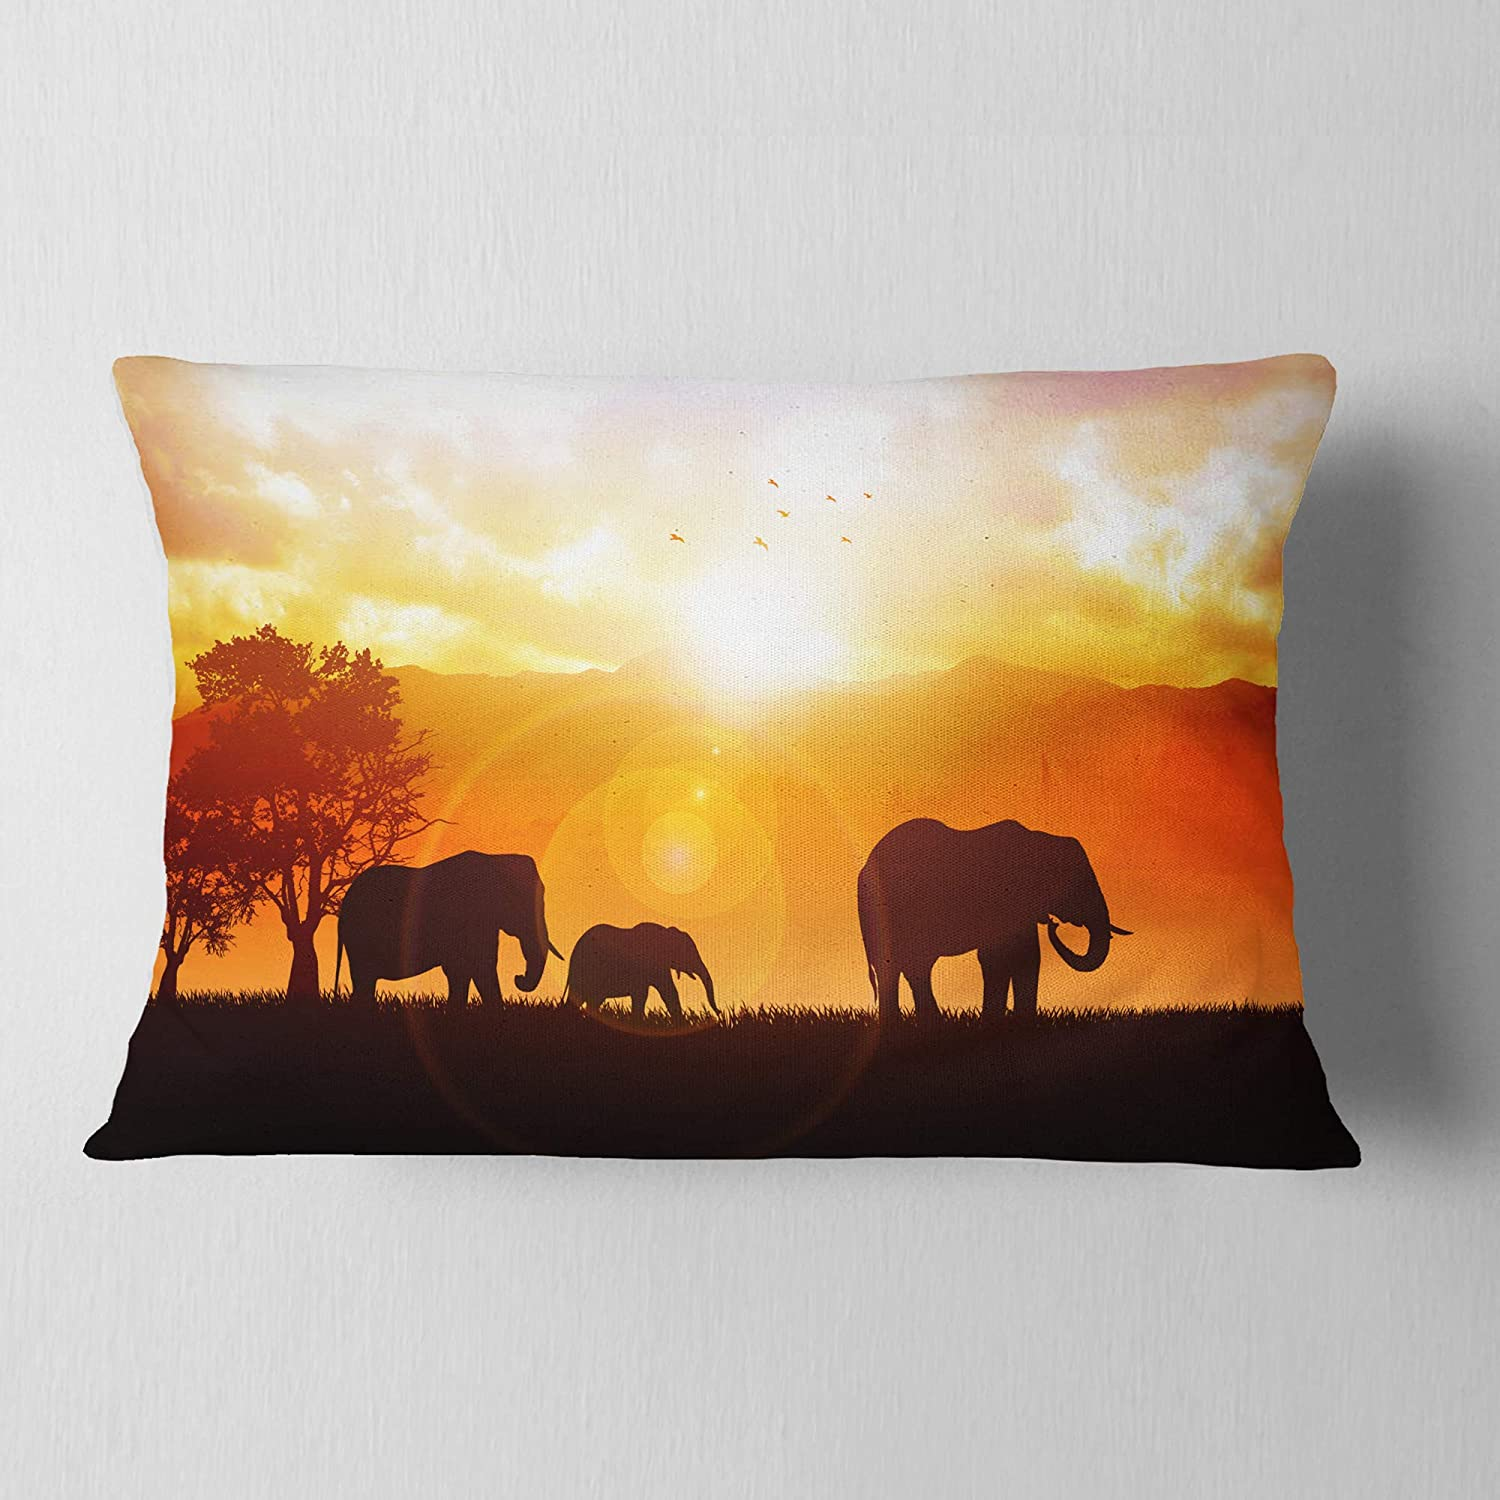 Sofa Throw Pillow 12 in Designart CU12963-12-20 Elephants Walking at Sunset African Lumbar Cushion Cover for Living Room Insert Printed On Both Side in x 20 in